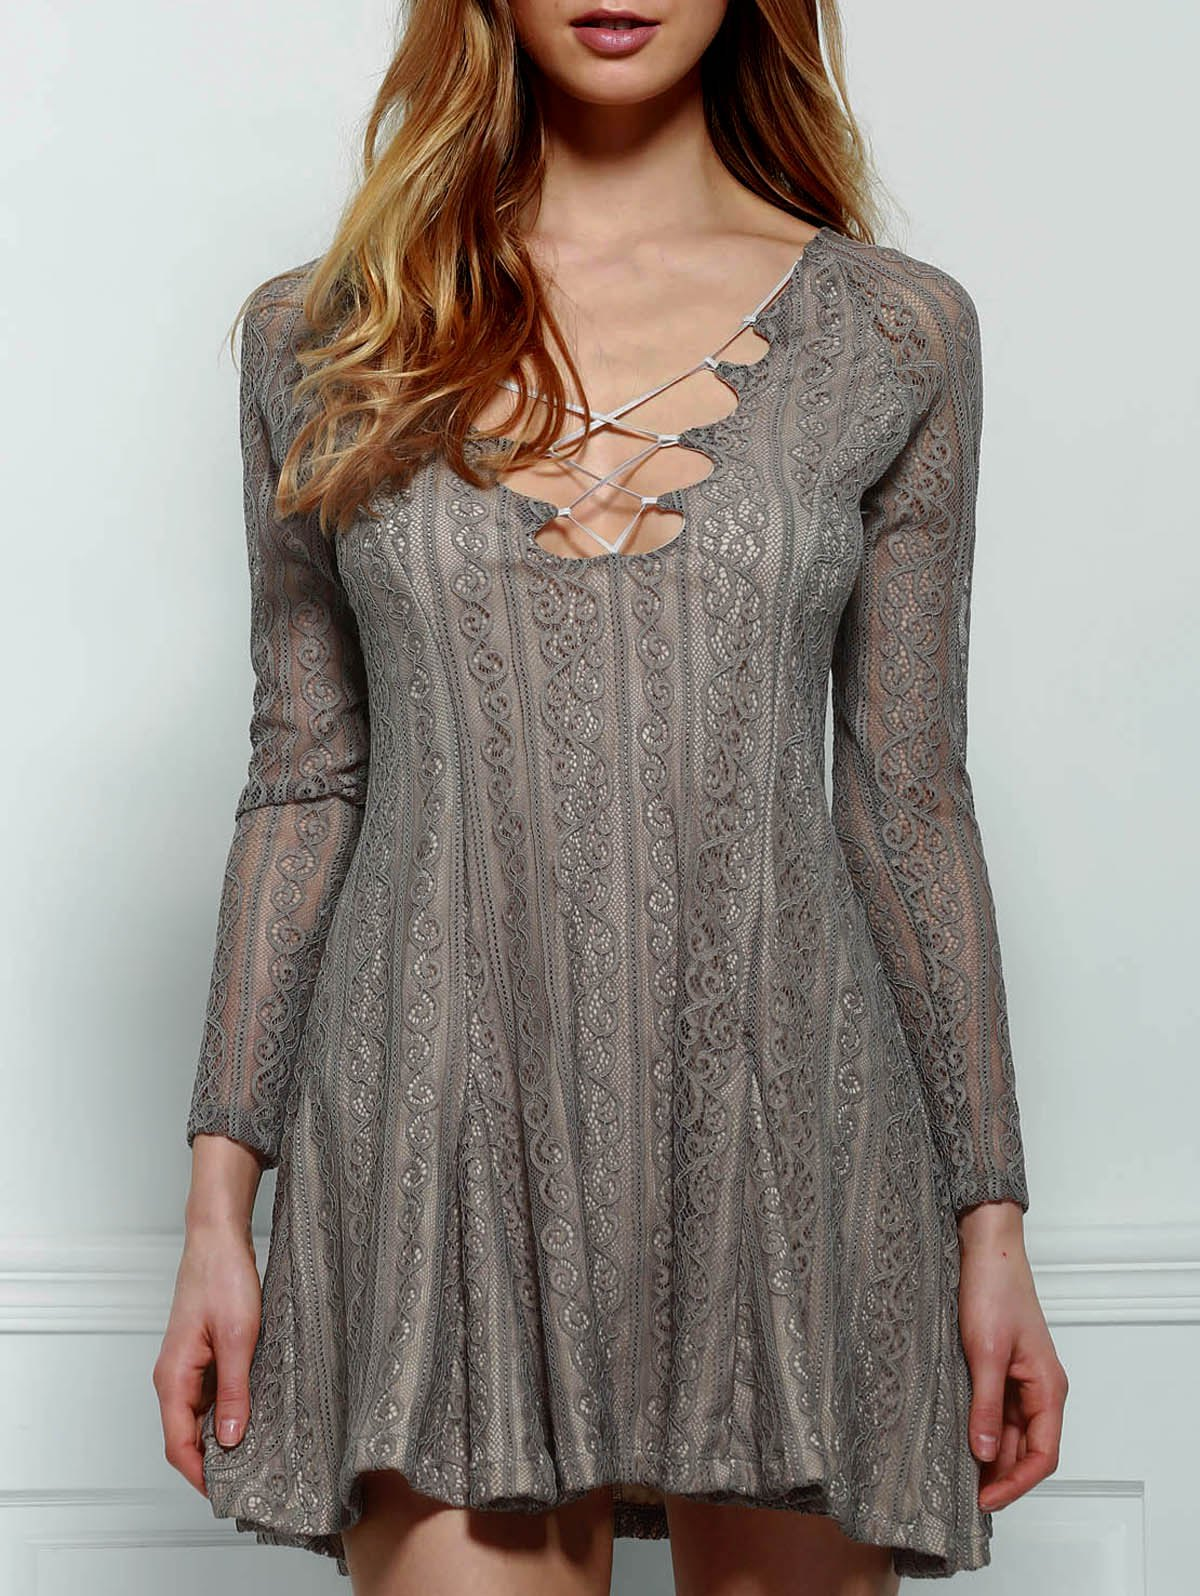 Sexy Plunging Collar Long Sleeve Solid Color Women's Lace Dress - GRAY M